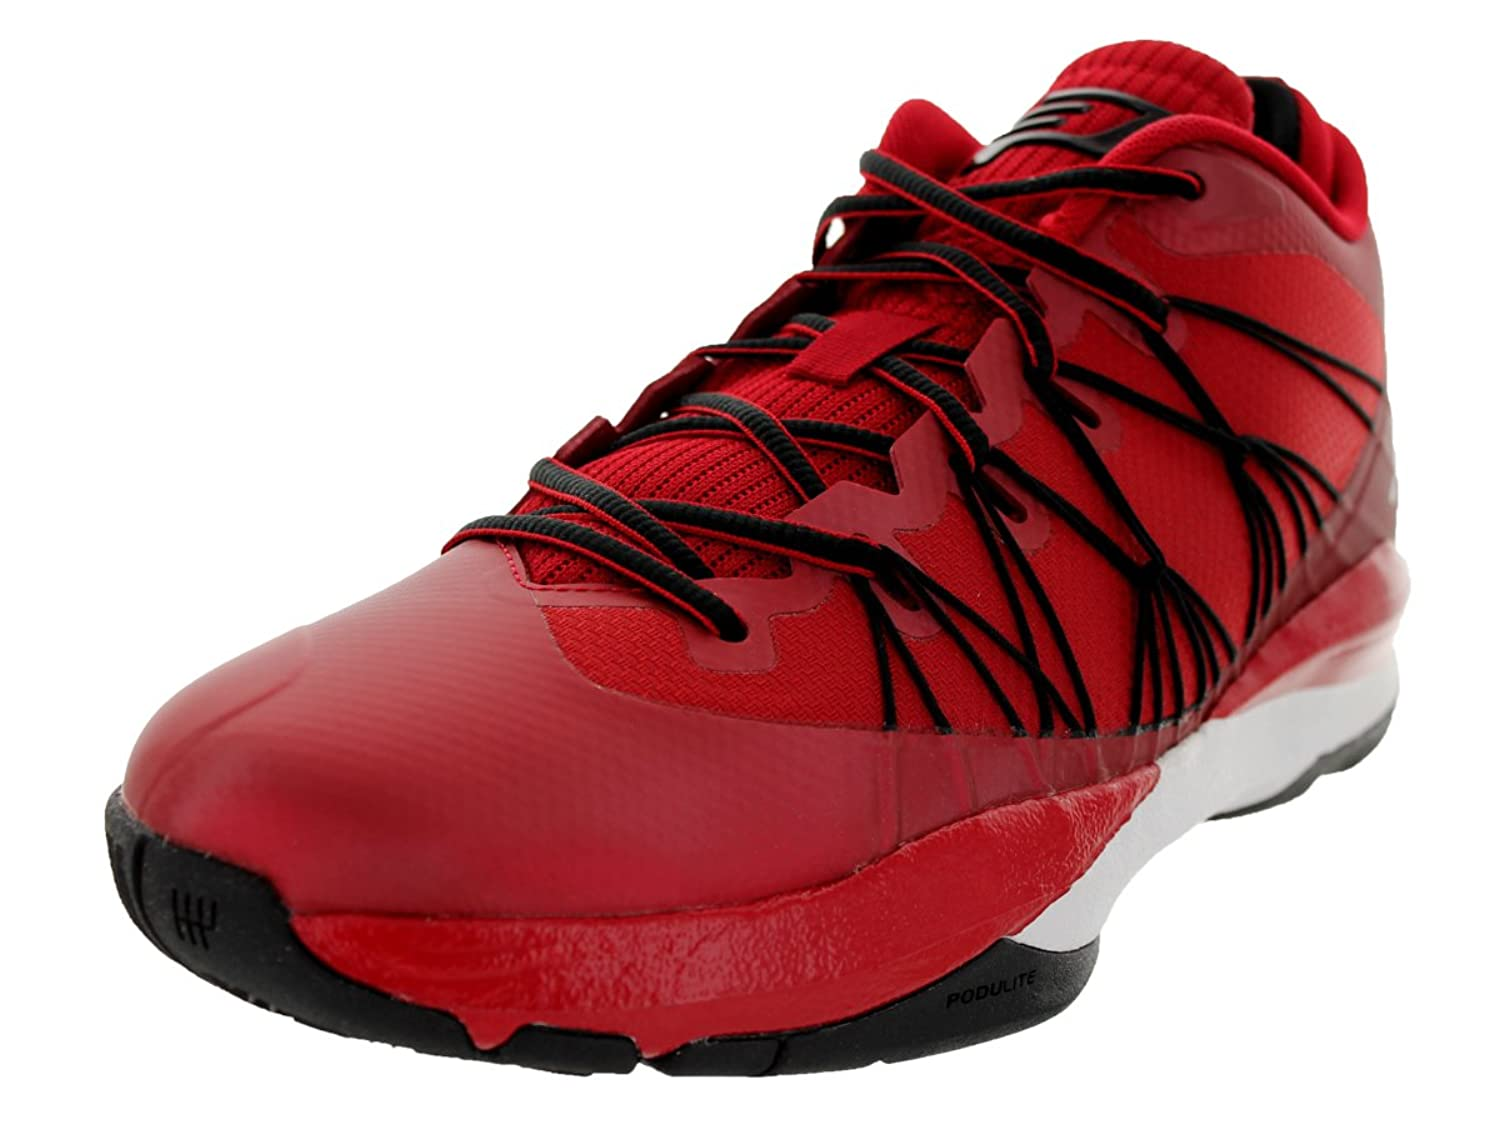 Nike Mens Jordan CP3.VII AE Basketball Shoes, Red, 10 M US 601-gym Red/Black-white